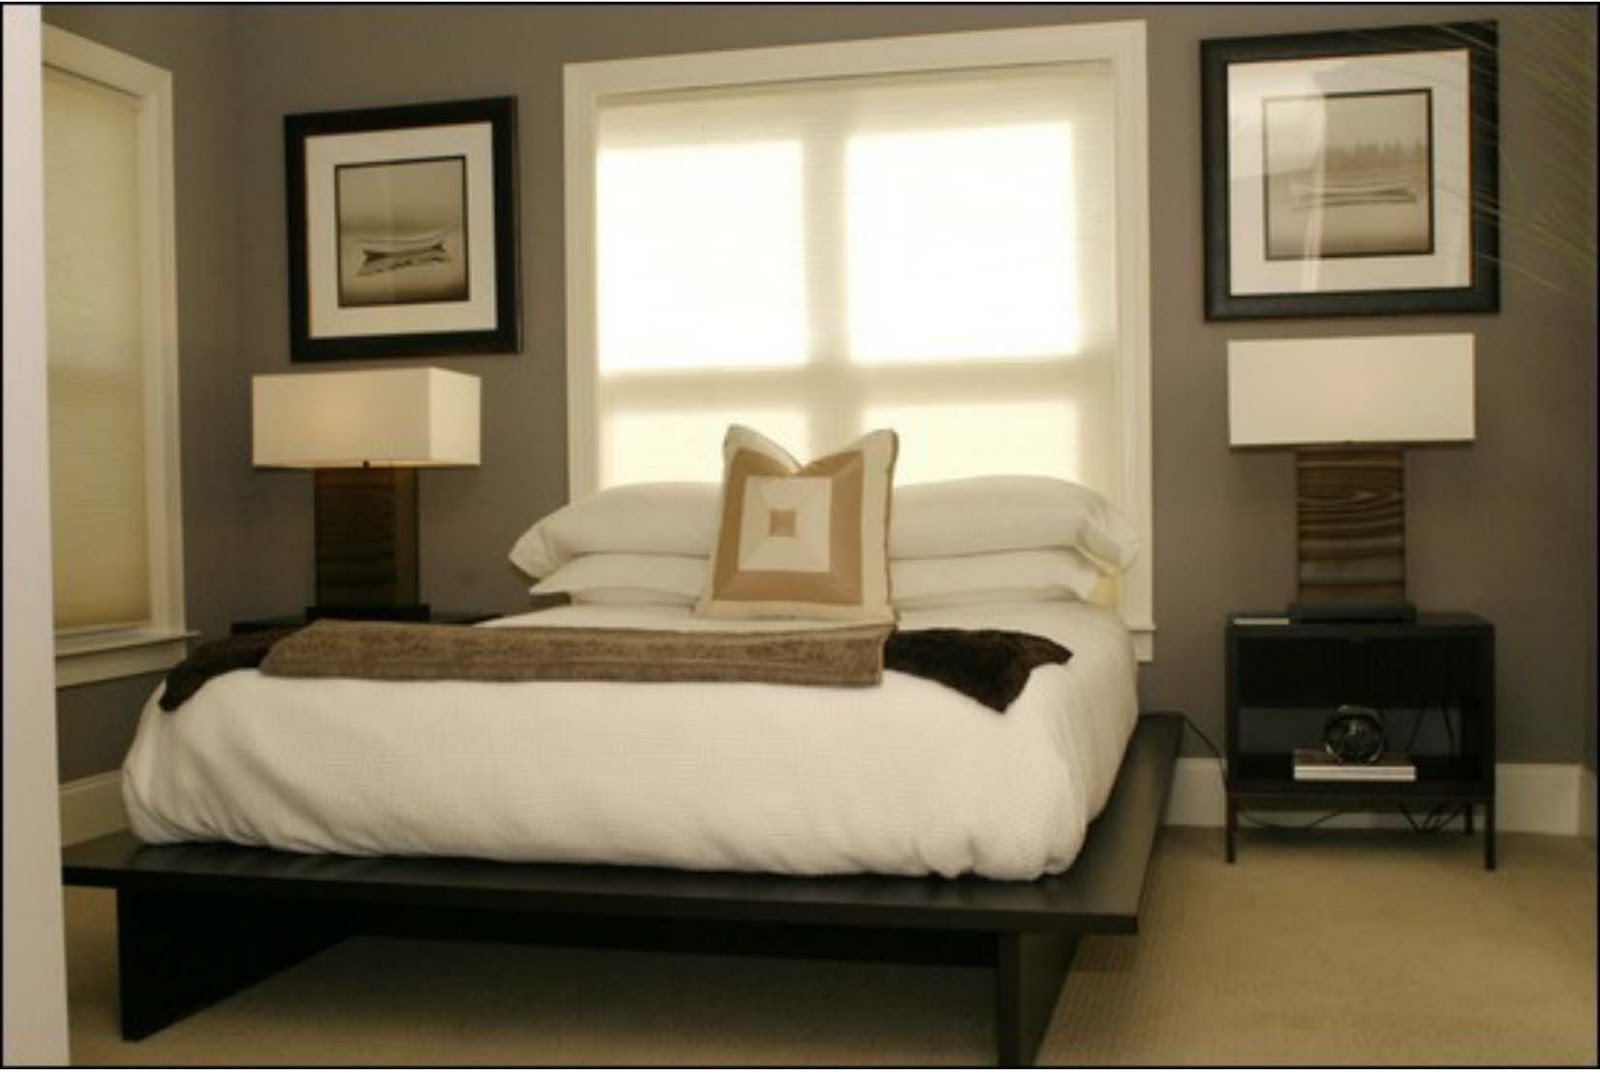 Tips For Placing A Bed In Front Of Window